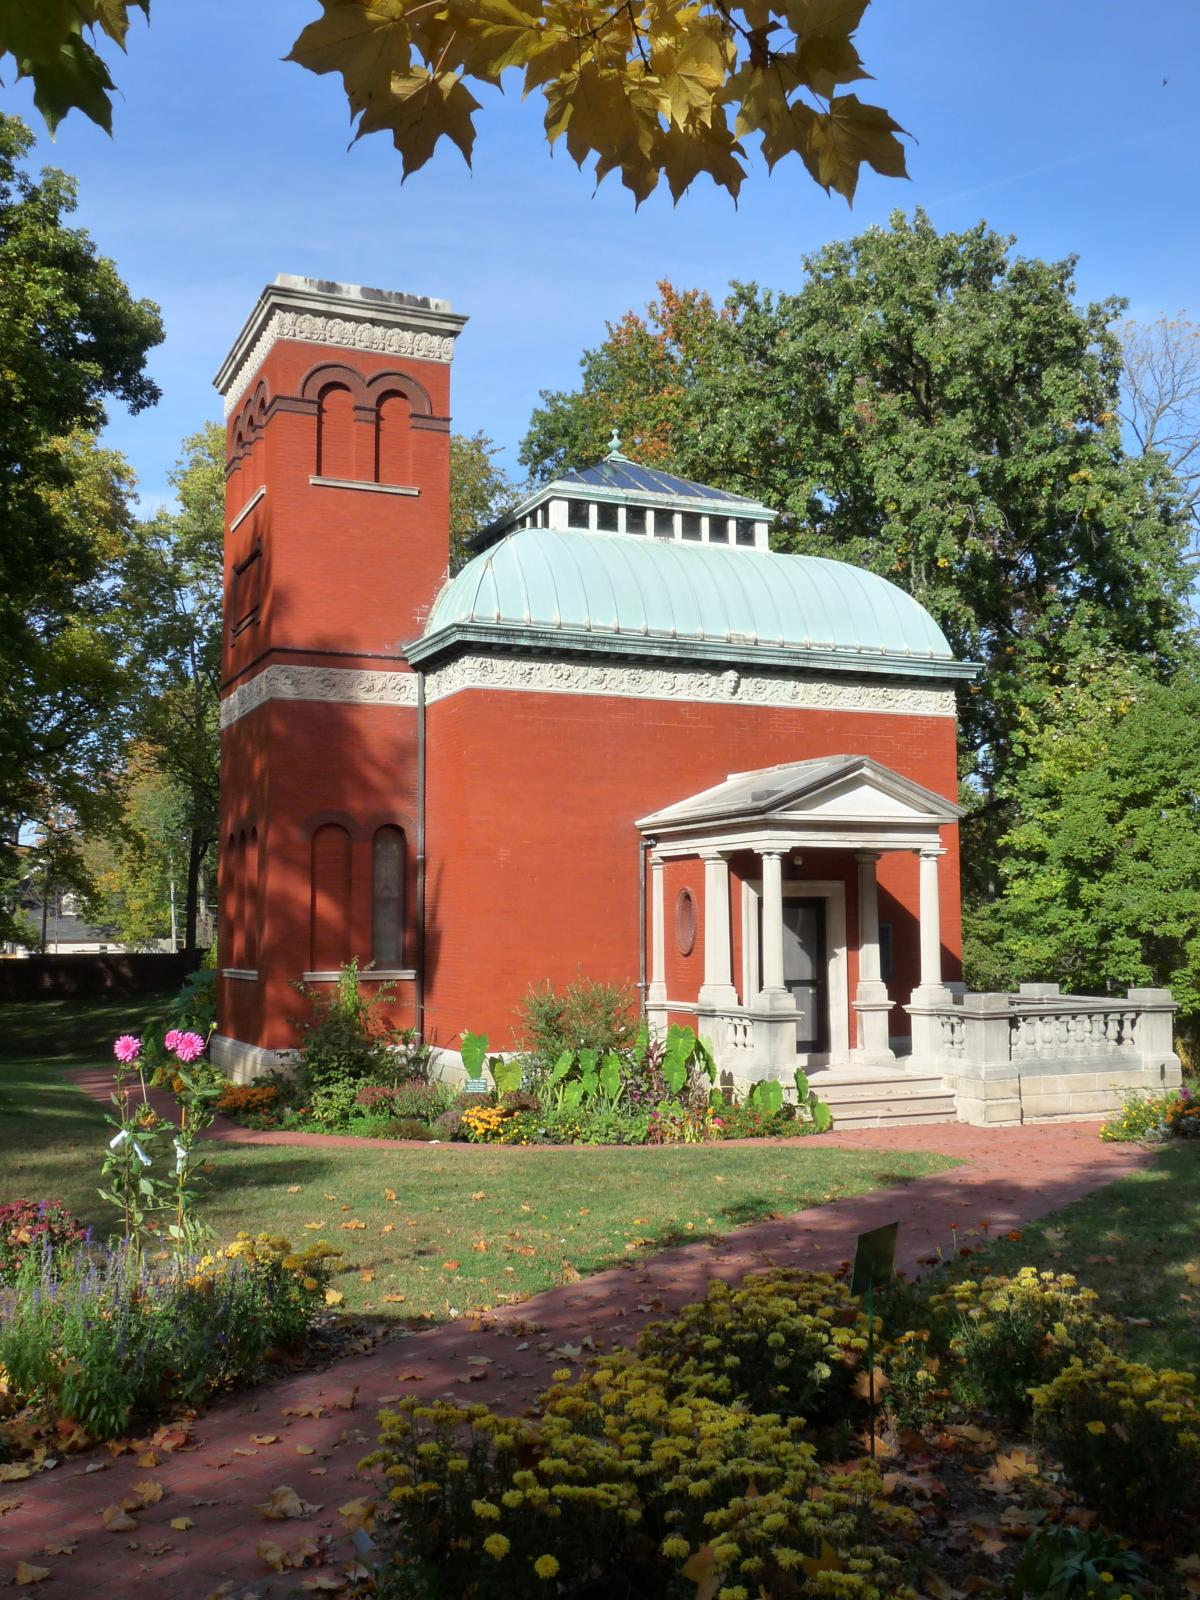 Red brick building with a teal roof and white porch columns, surrounded by green gardens and trees